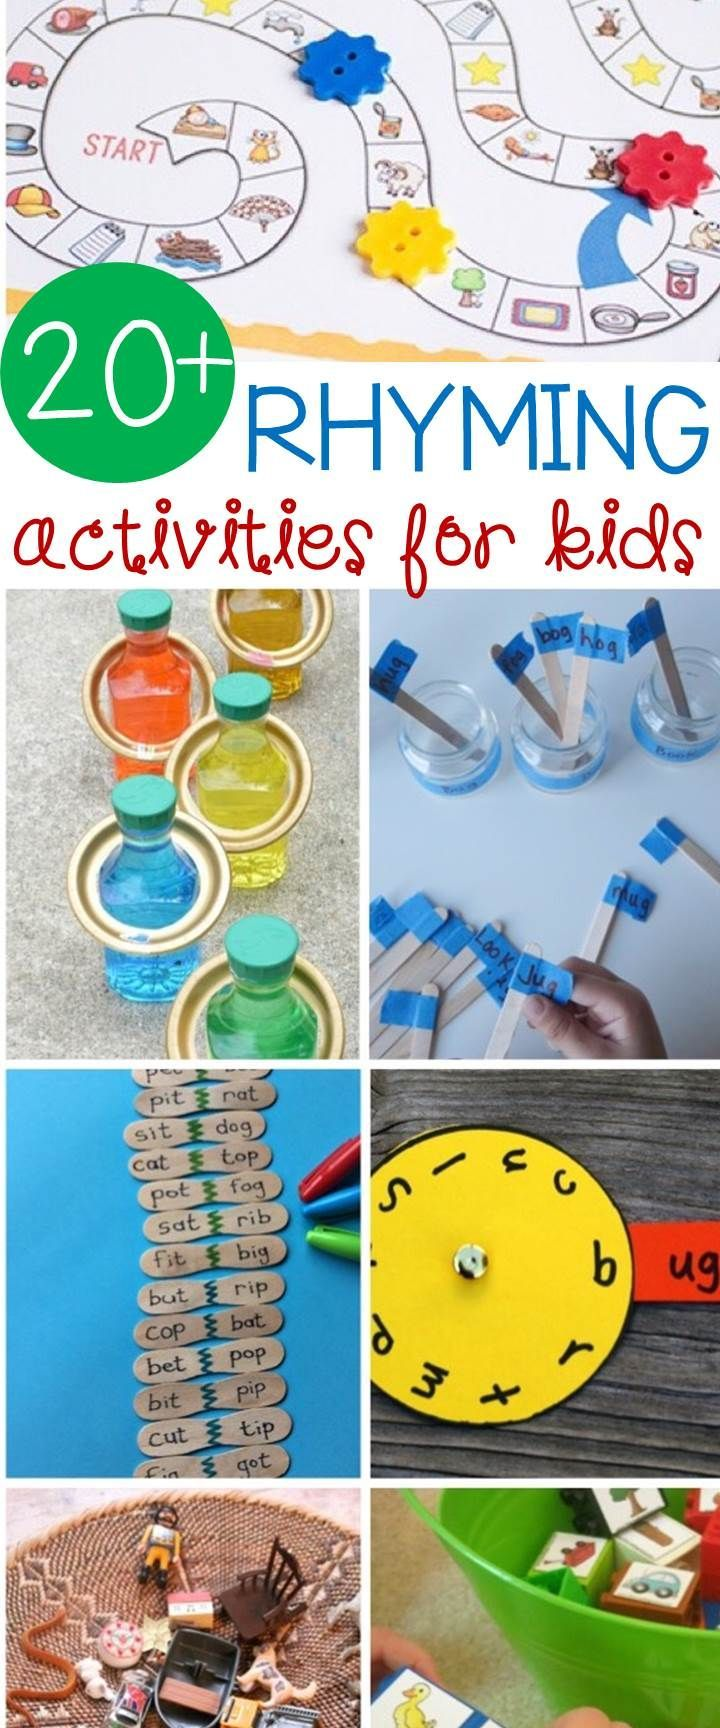 Simple, Easy and Fun Rhyming Activities for Kids | Rhyming ...